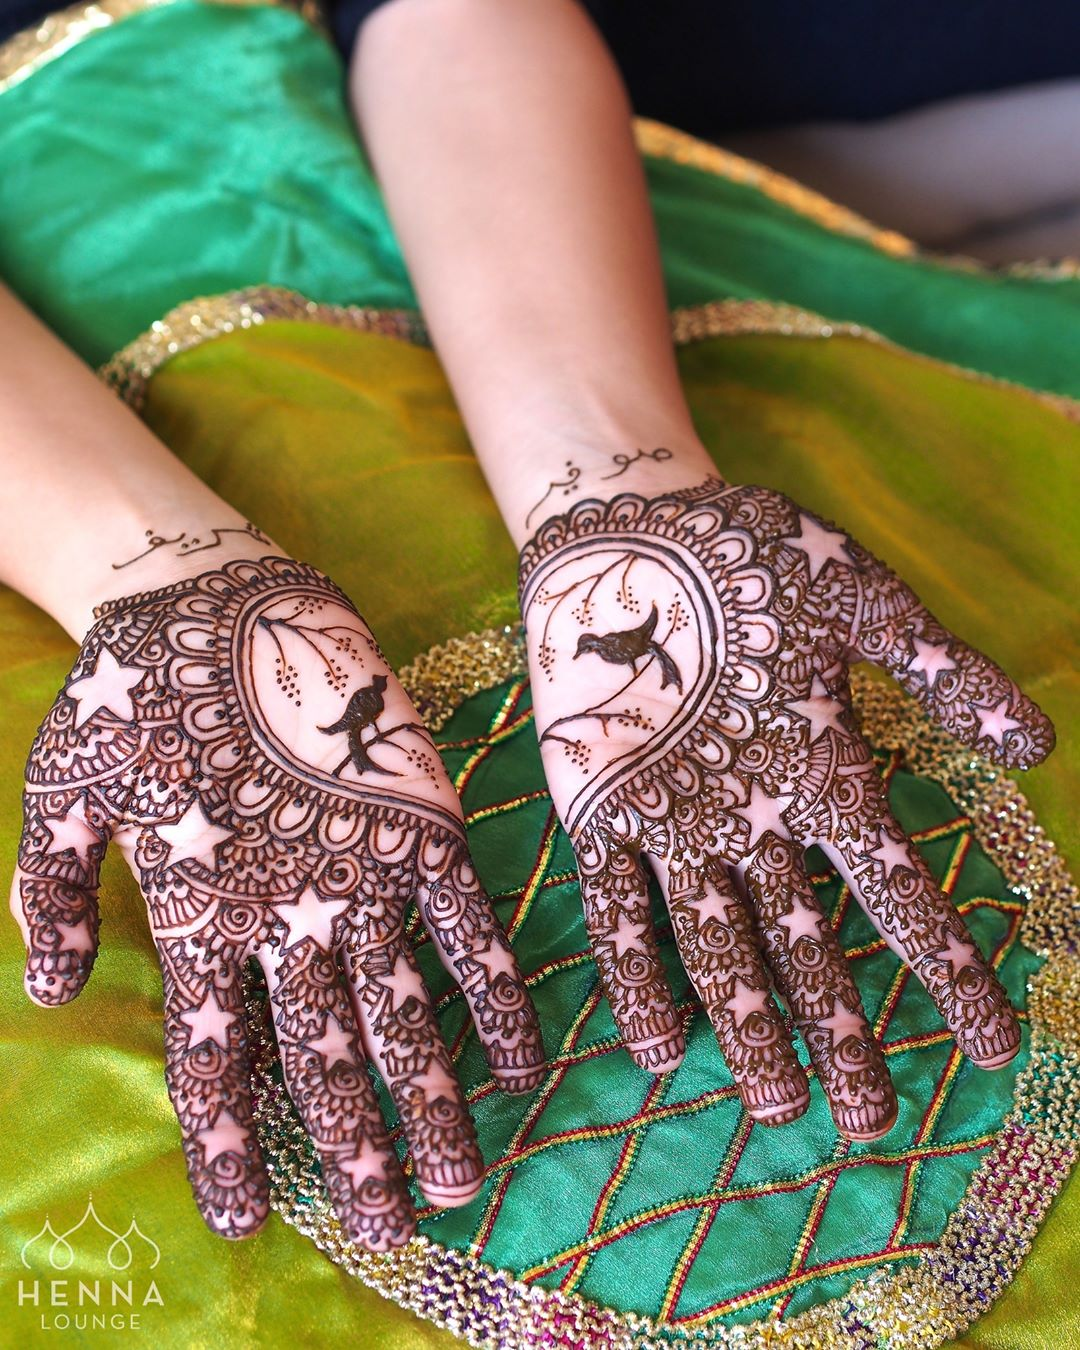 Unique pattern on a new mehendi design for 2018 brides